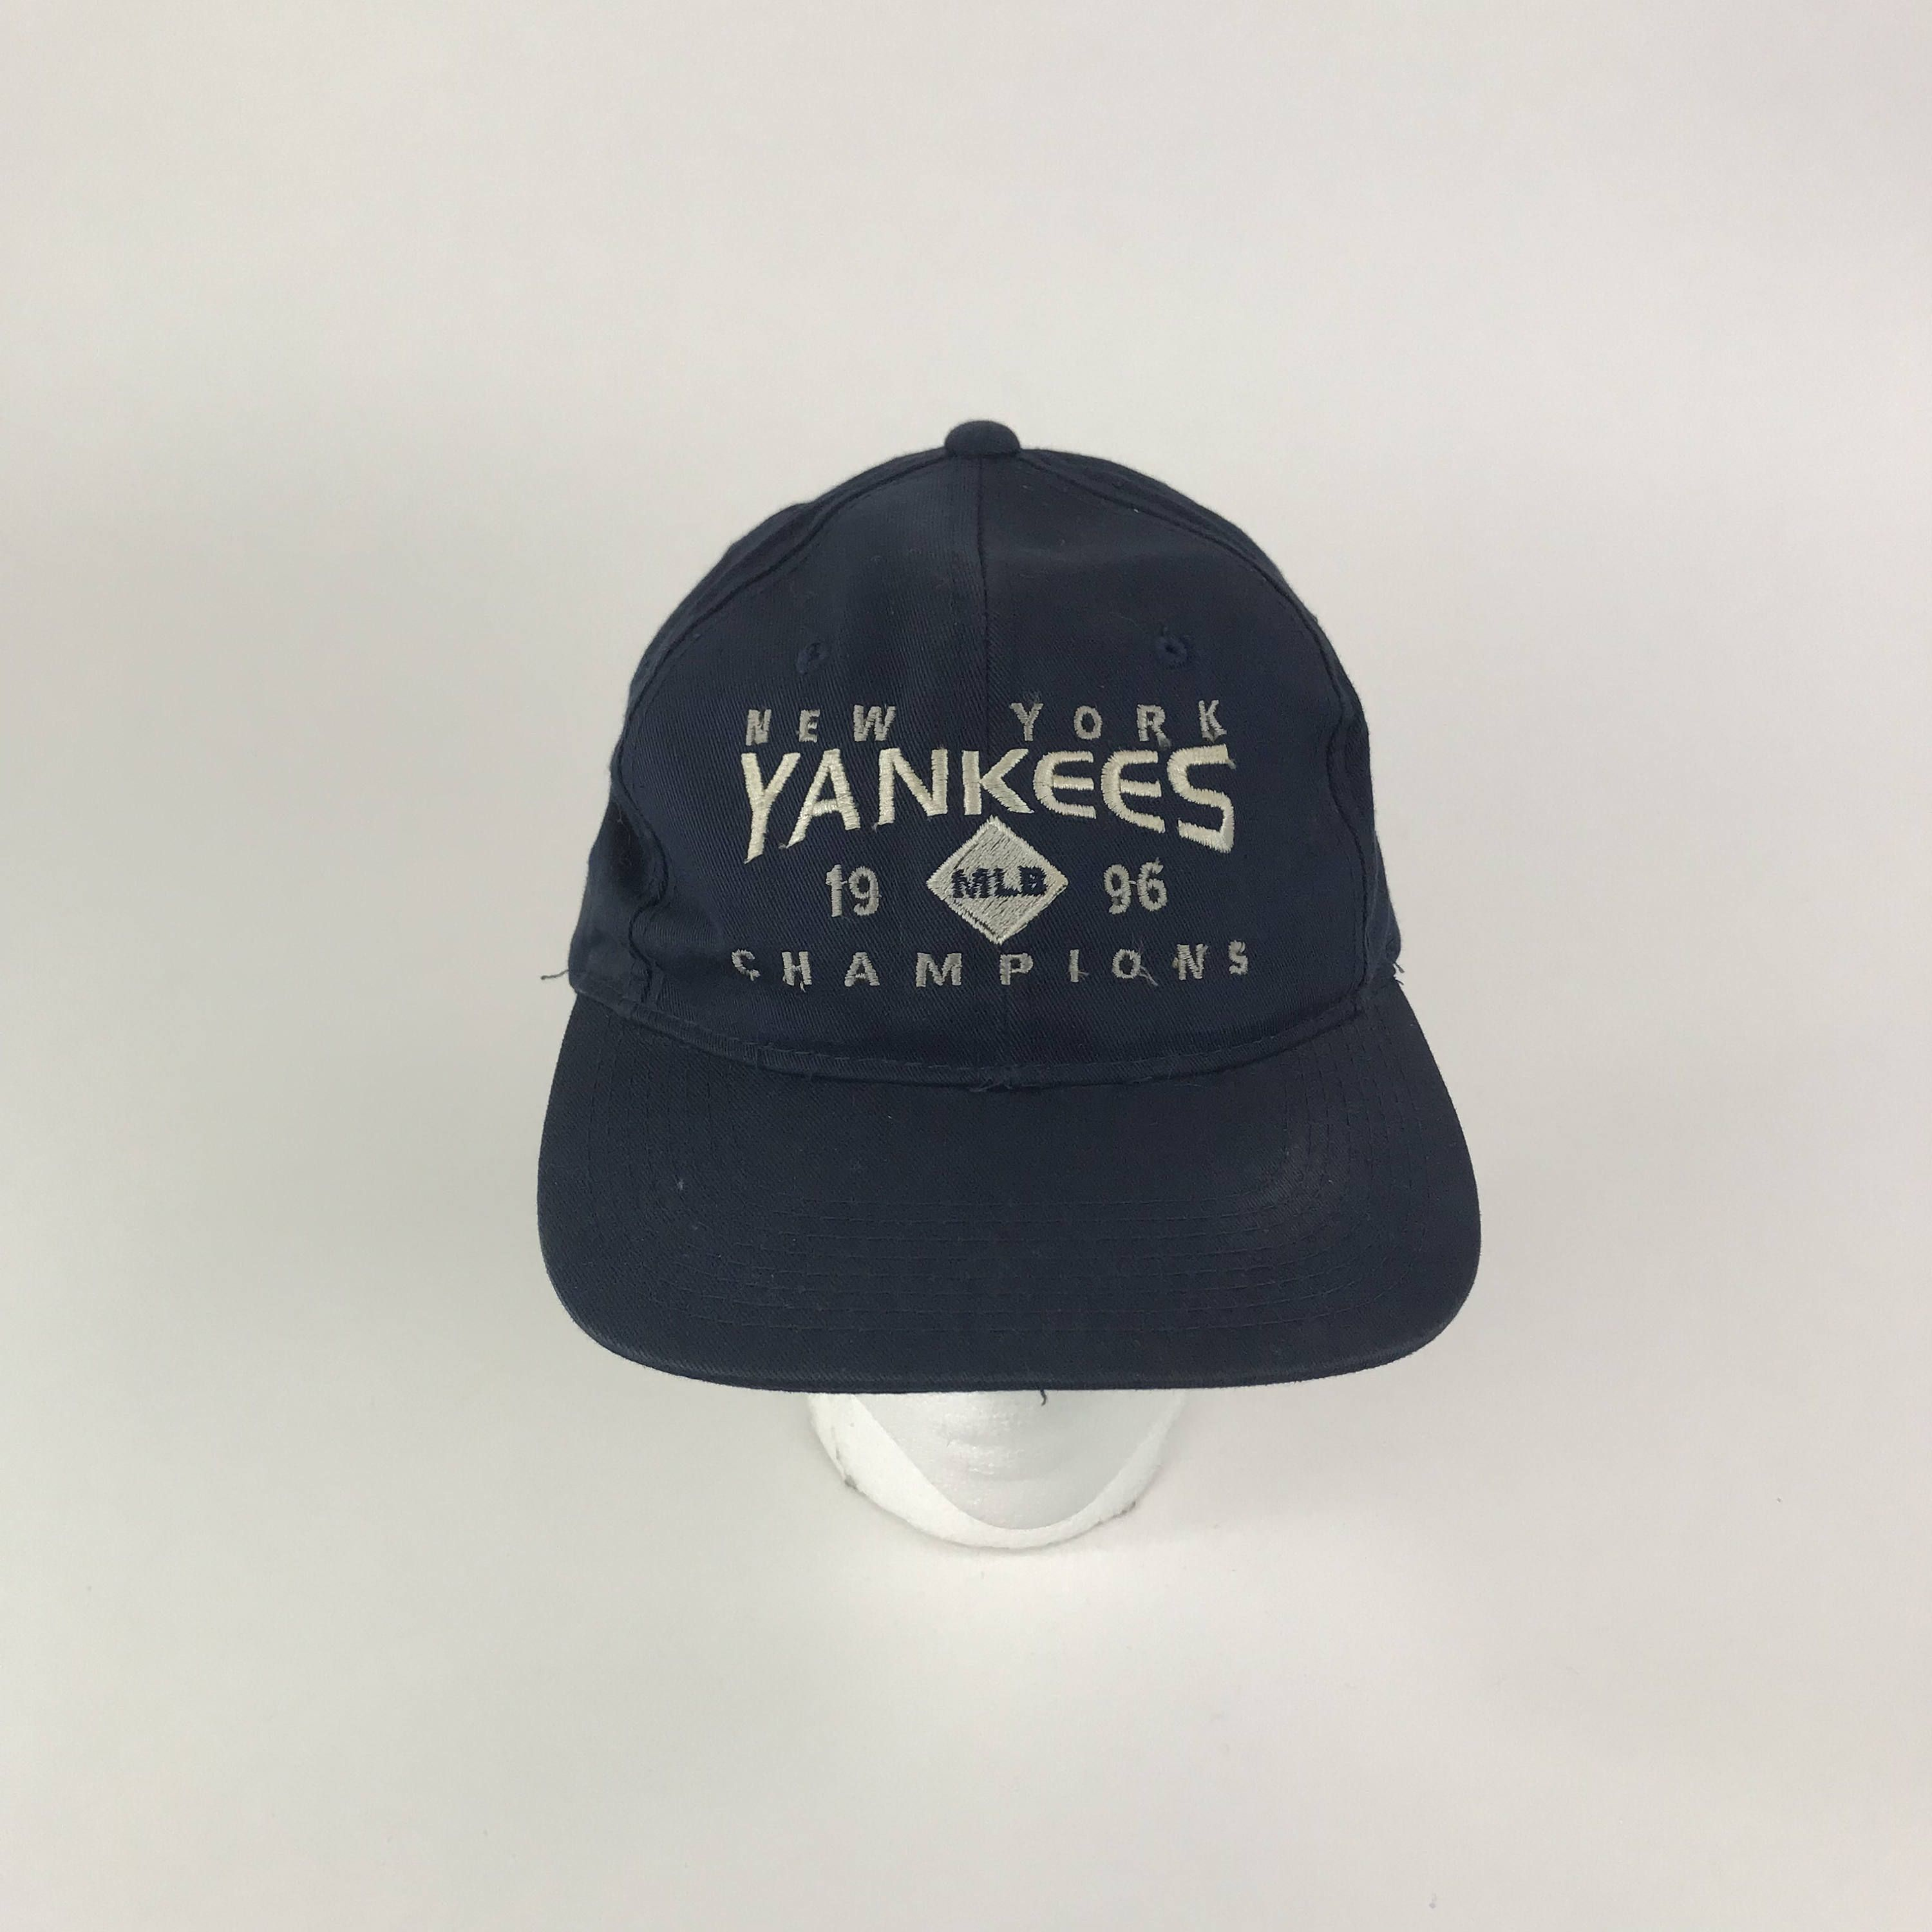 00e6d6f64f0 ... clearance 1996 champions new york yankees snapback hat cap retro new  york yankees hat blue 709ad